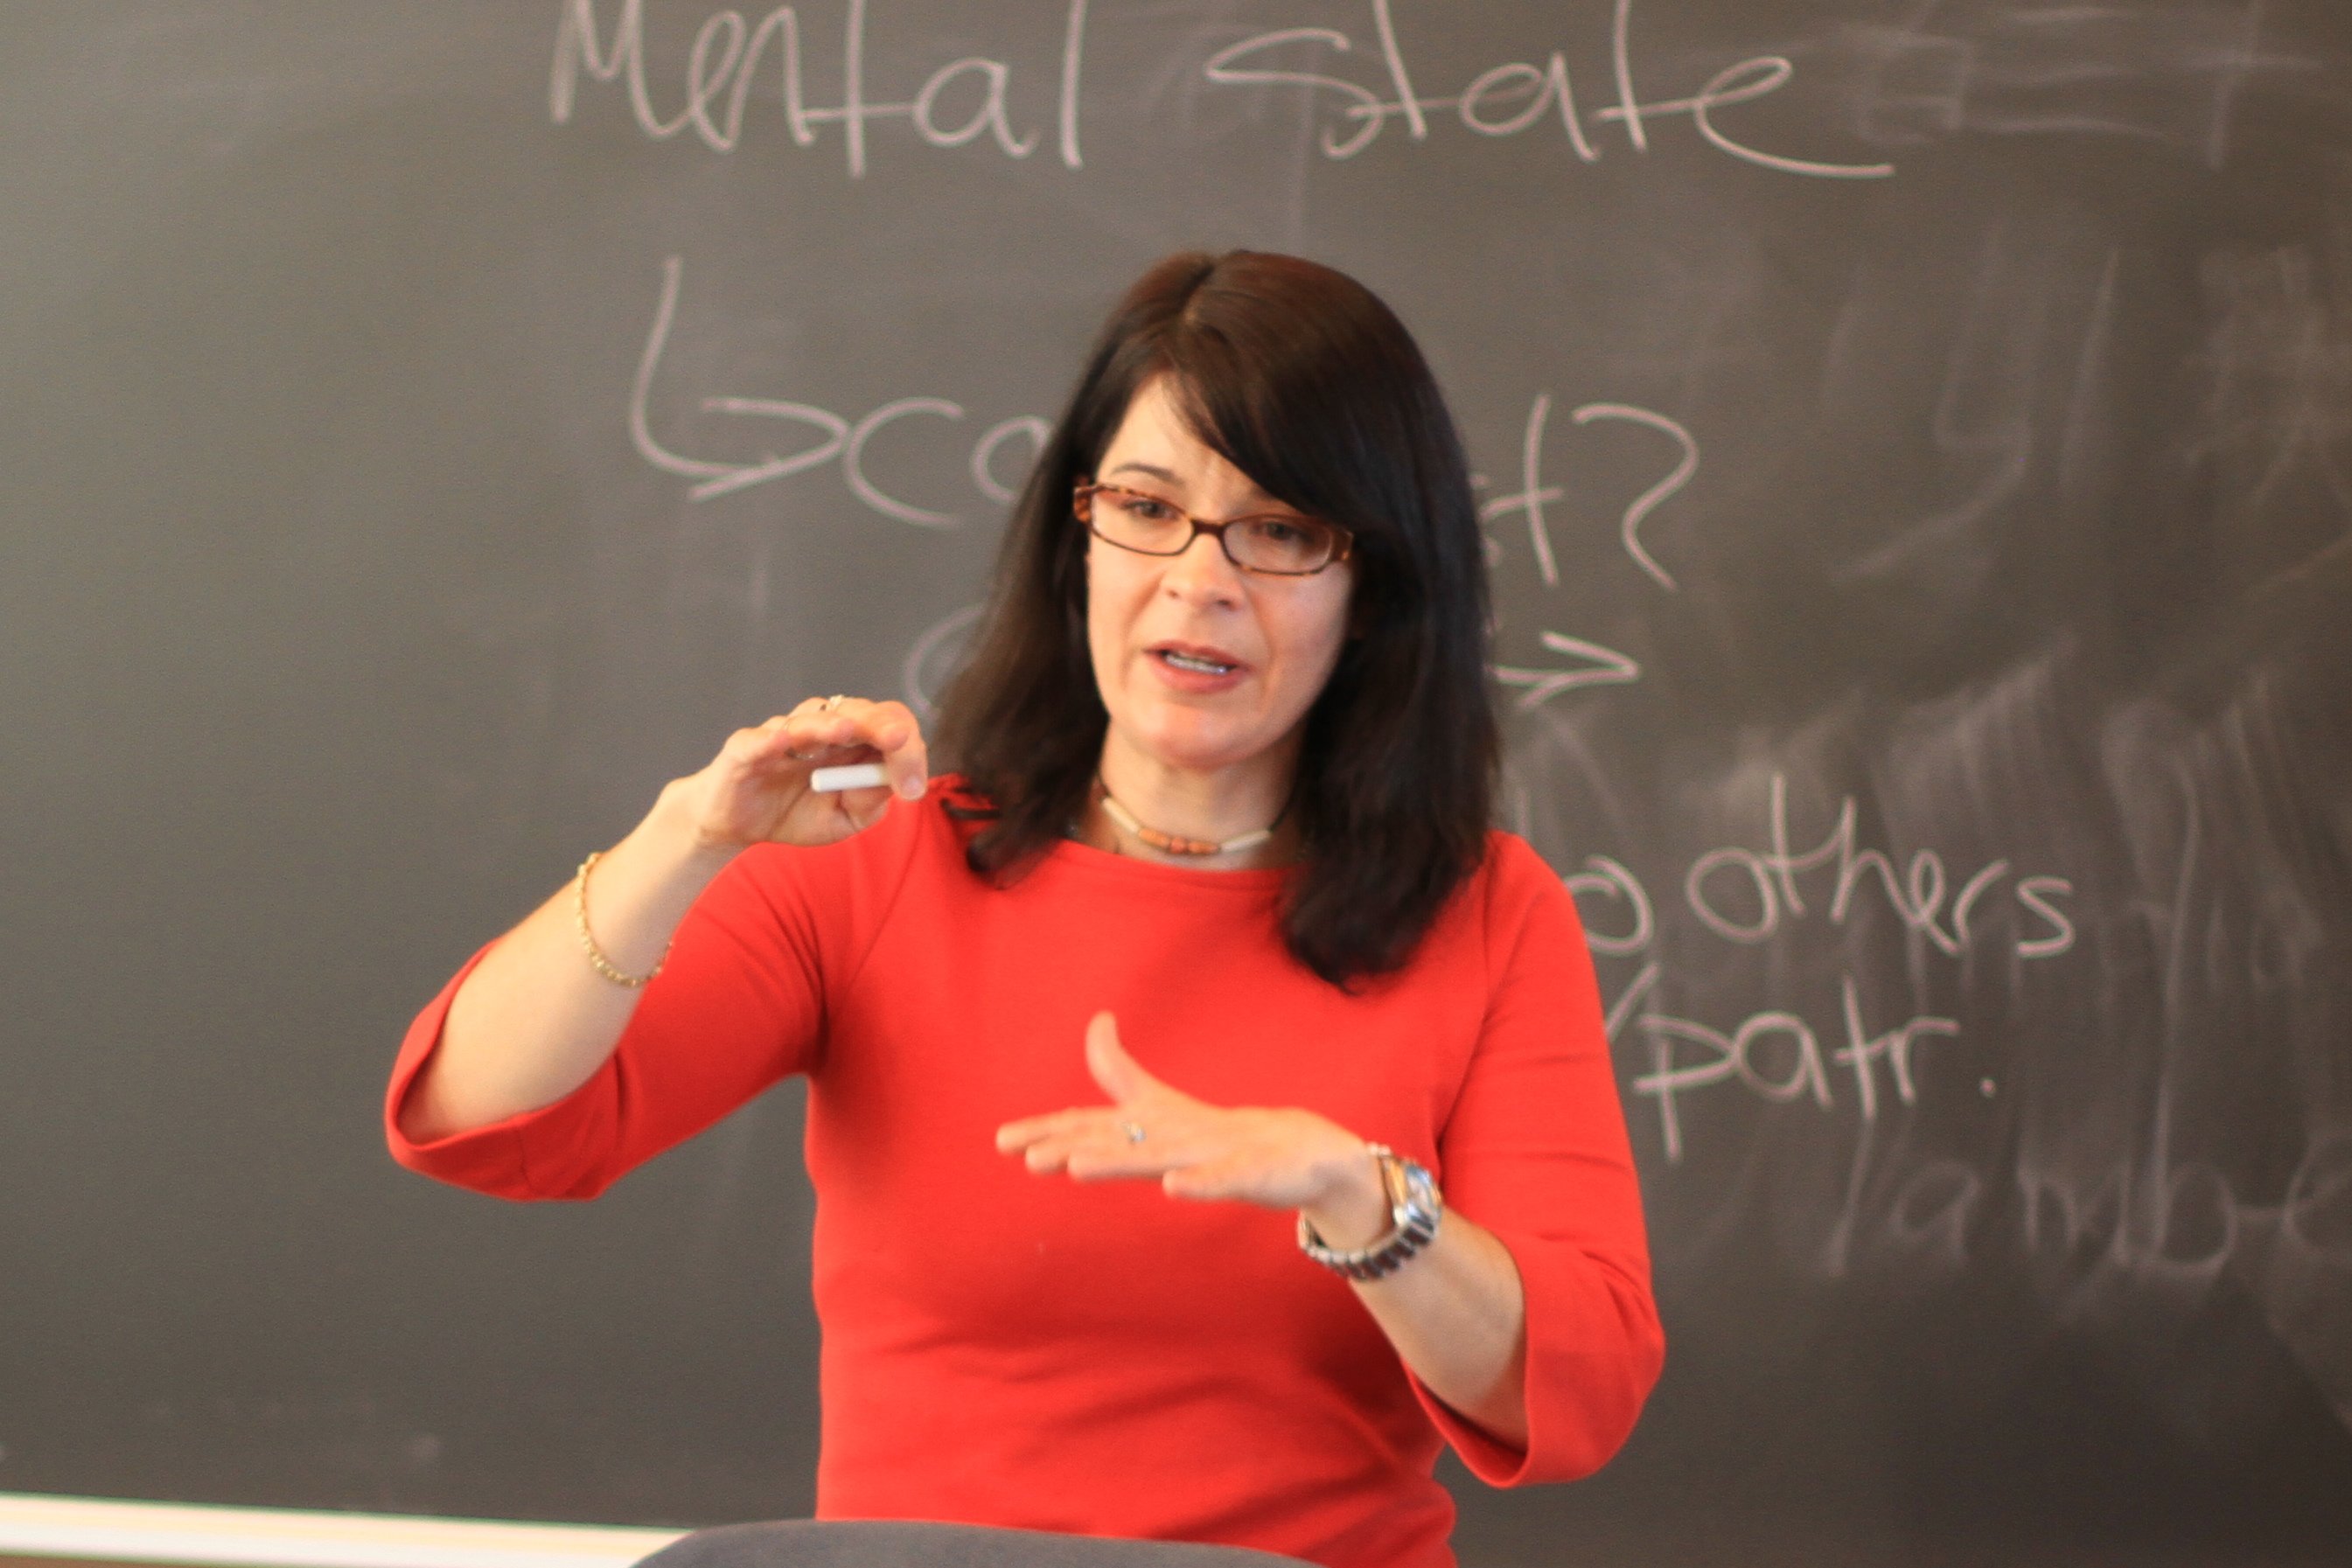 Dr. Nancy McHugh in Modern Philosophy, February 2012